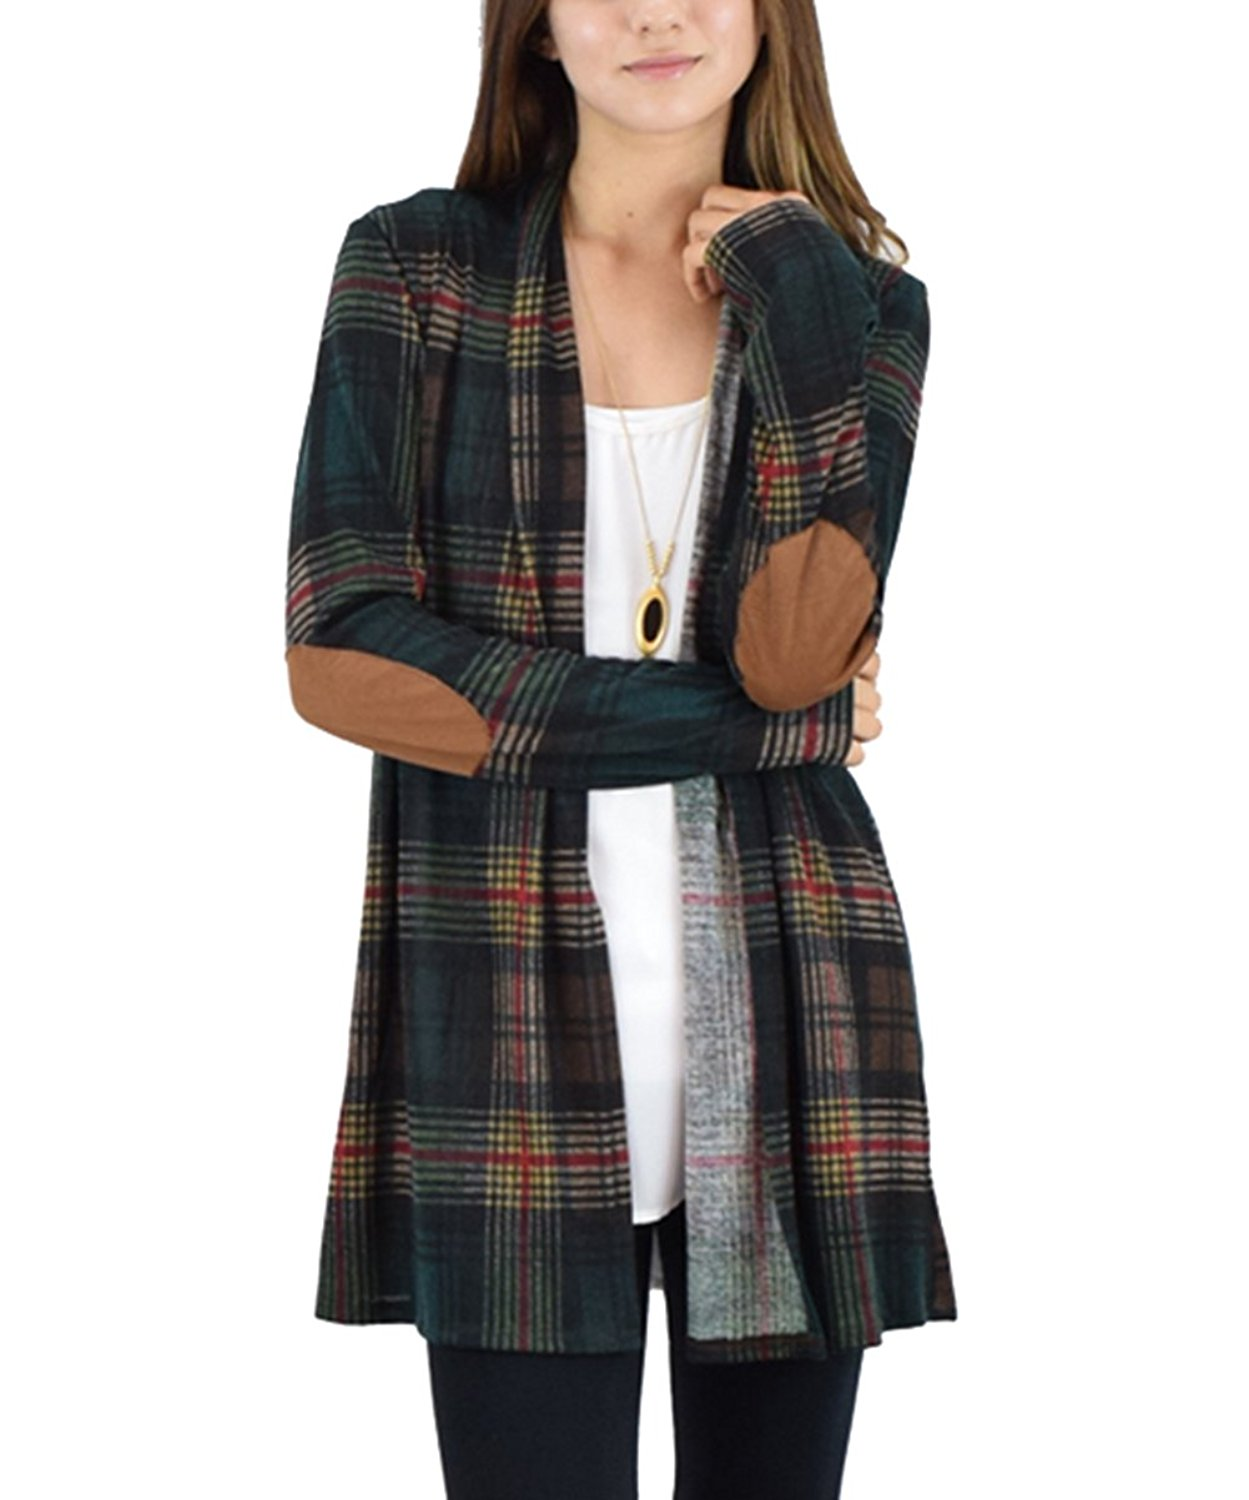 c26b0d39896 Get Quotations · Amborido Womens Long Sleeve Plaid Print Elbow-Patch Open  Front Cardigan Sweater